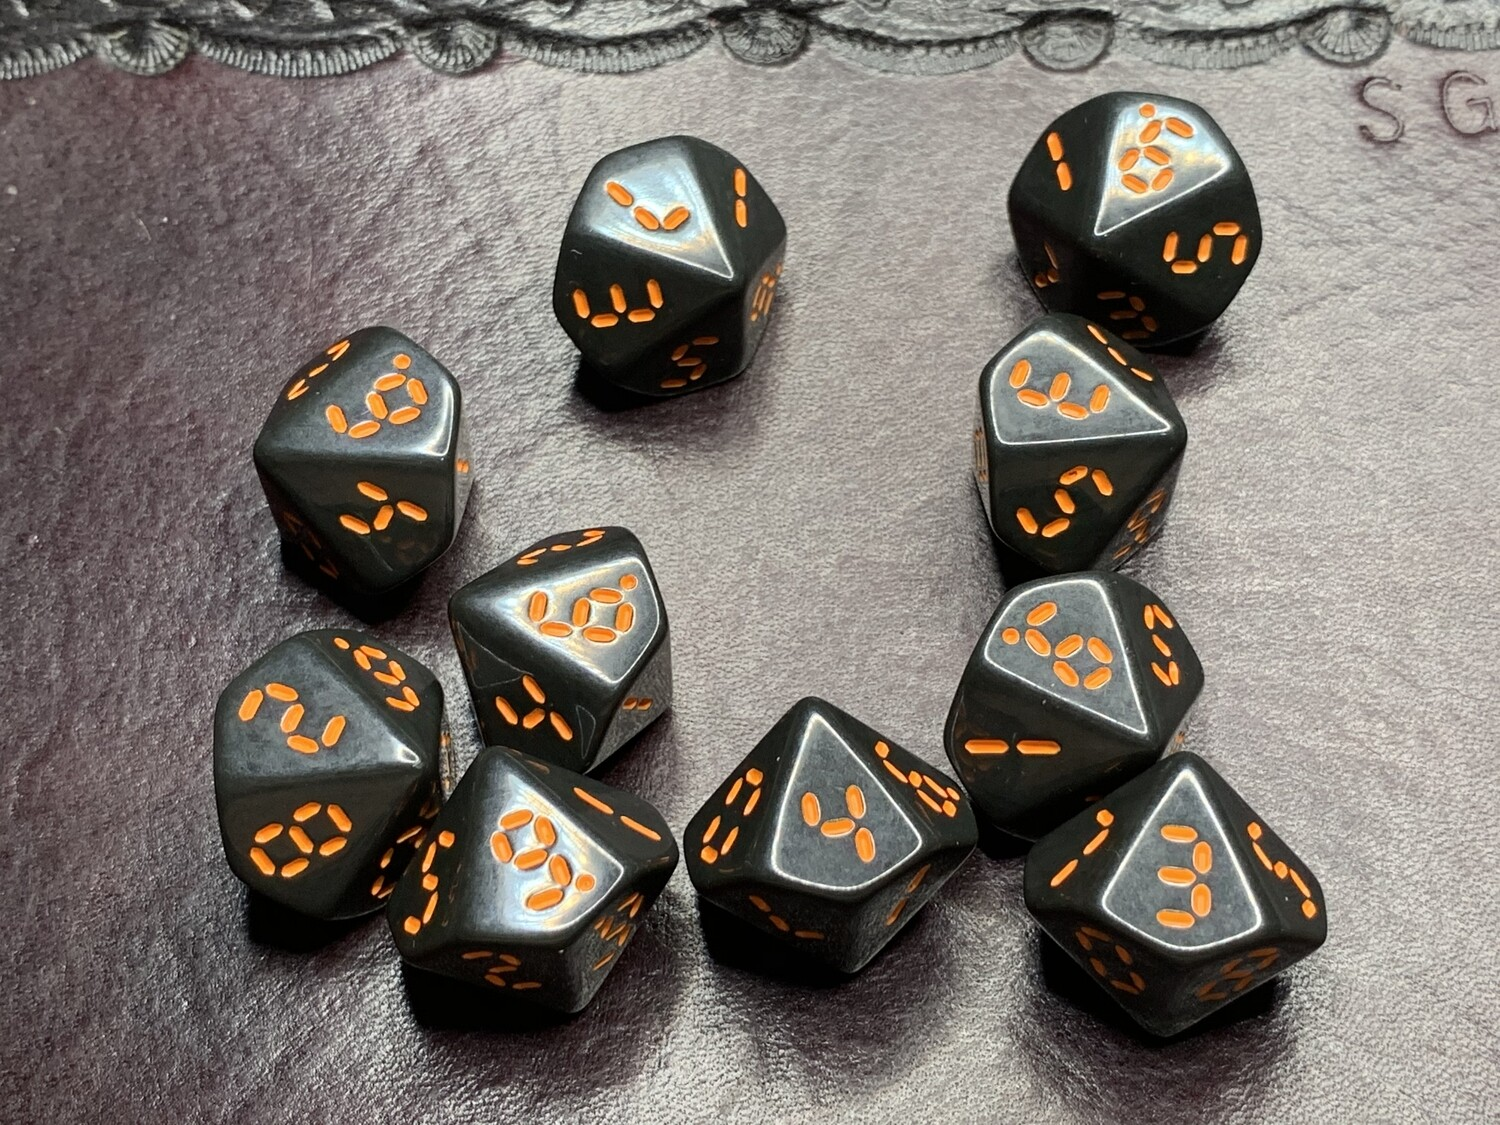 "Retro Dice 10D10 (Ten 10-Sided) Polyhedral Set ""Fly Dangerous"" Tabletop RPG Gaming Roleplay"